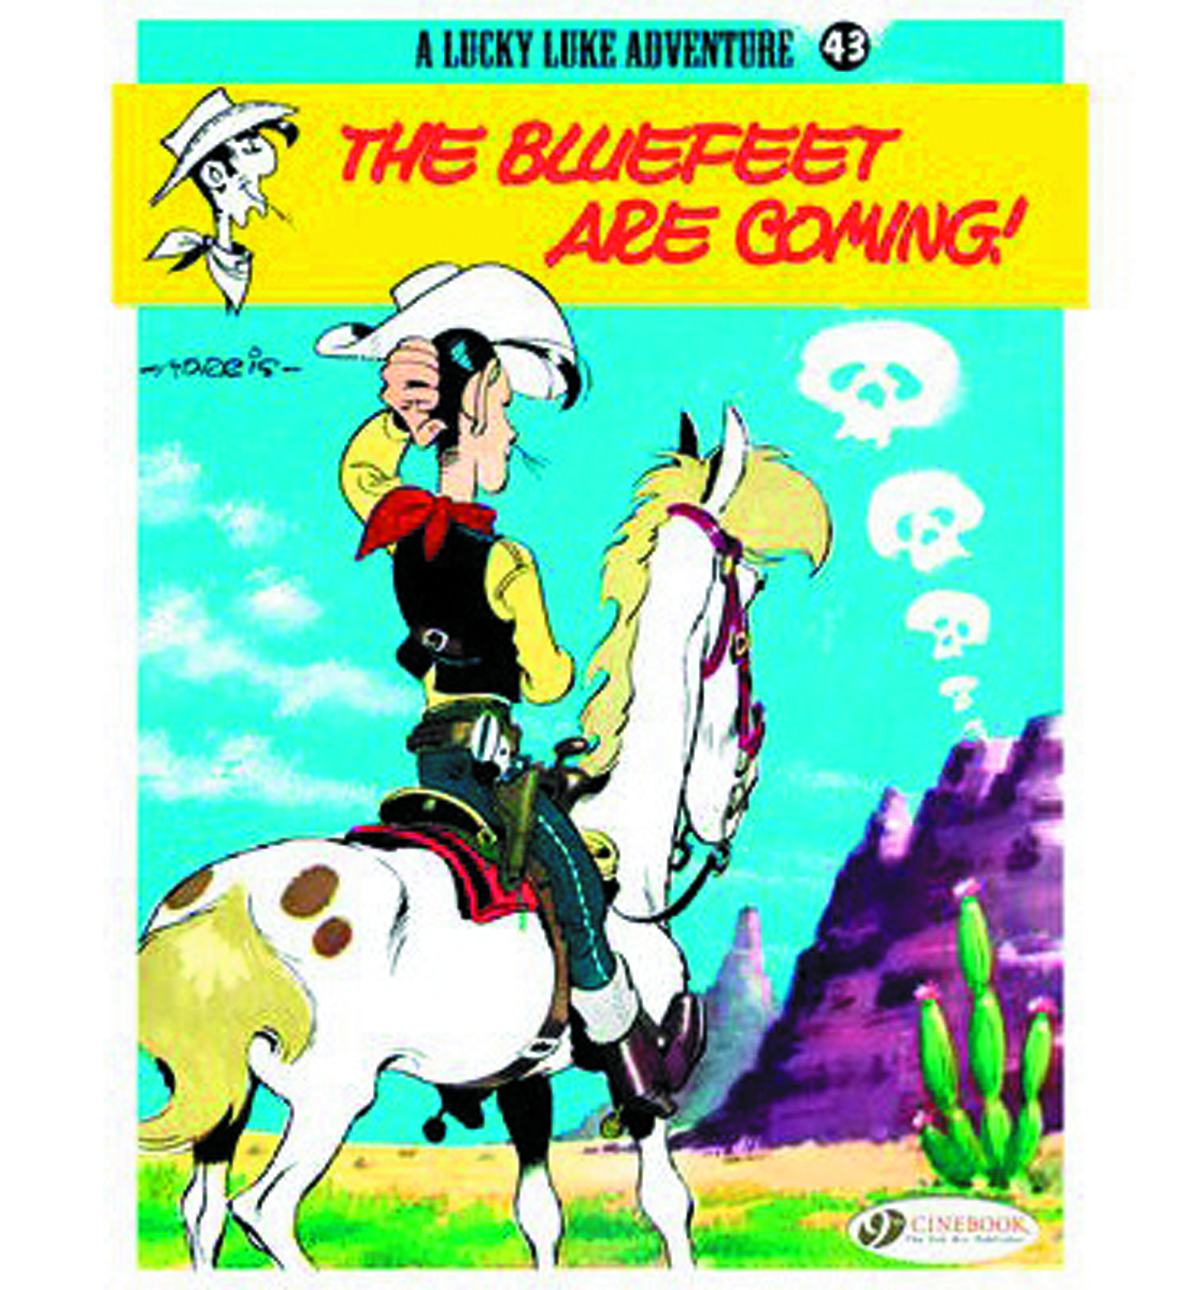 LUCKY LUKE TP VOL 43 BLUEFEET ARE COMING